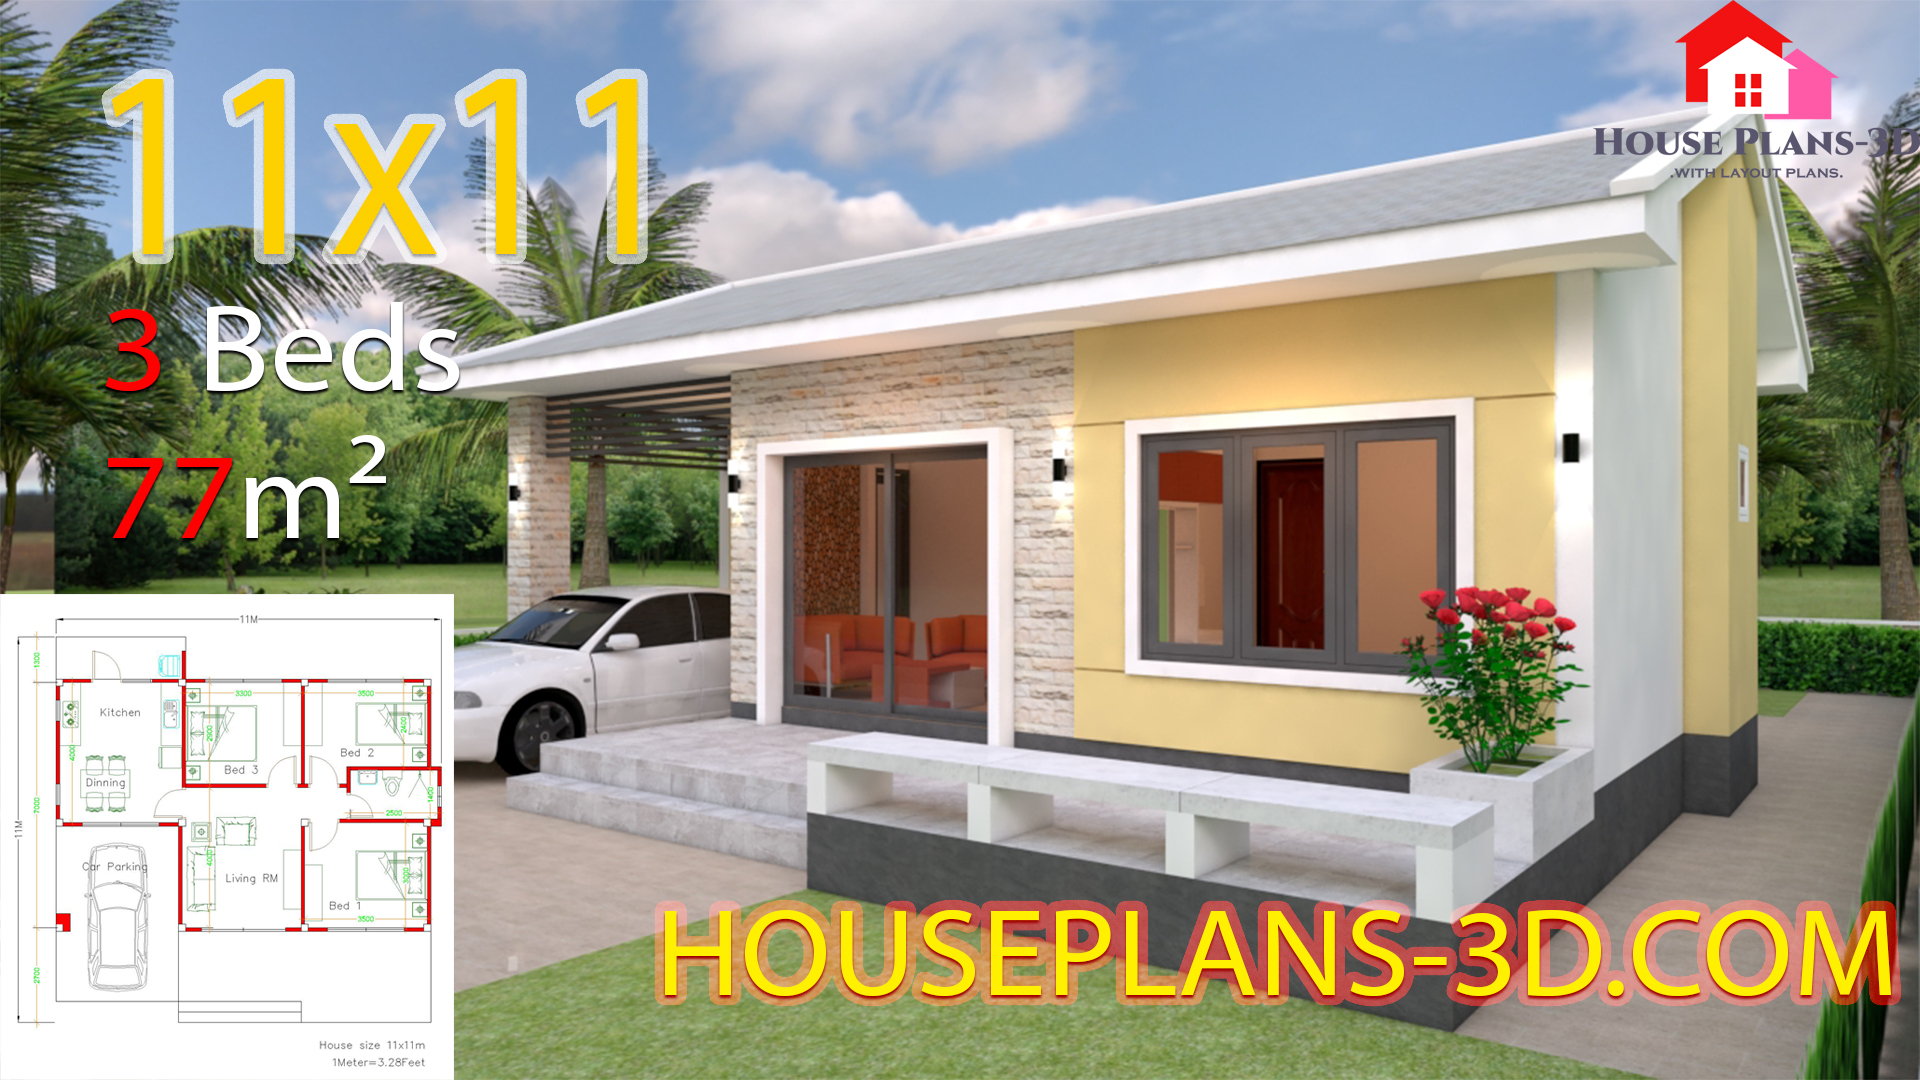 Simple House Design Plans 11x11 with 3 Bedrooms - House Plans 3D